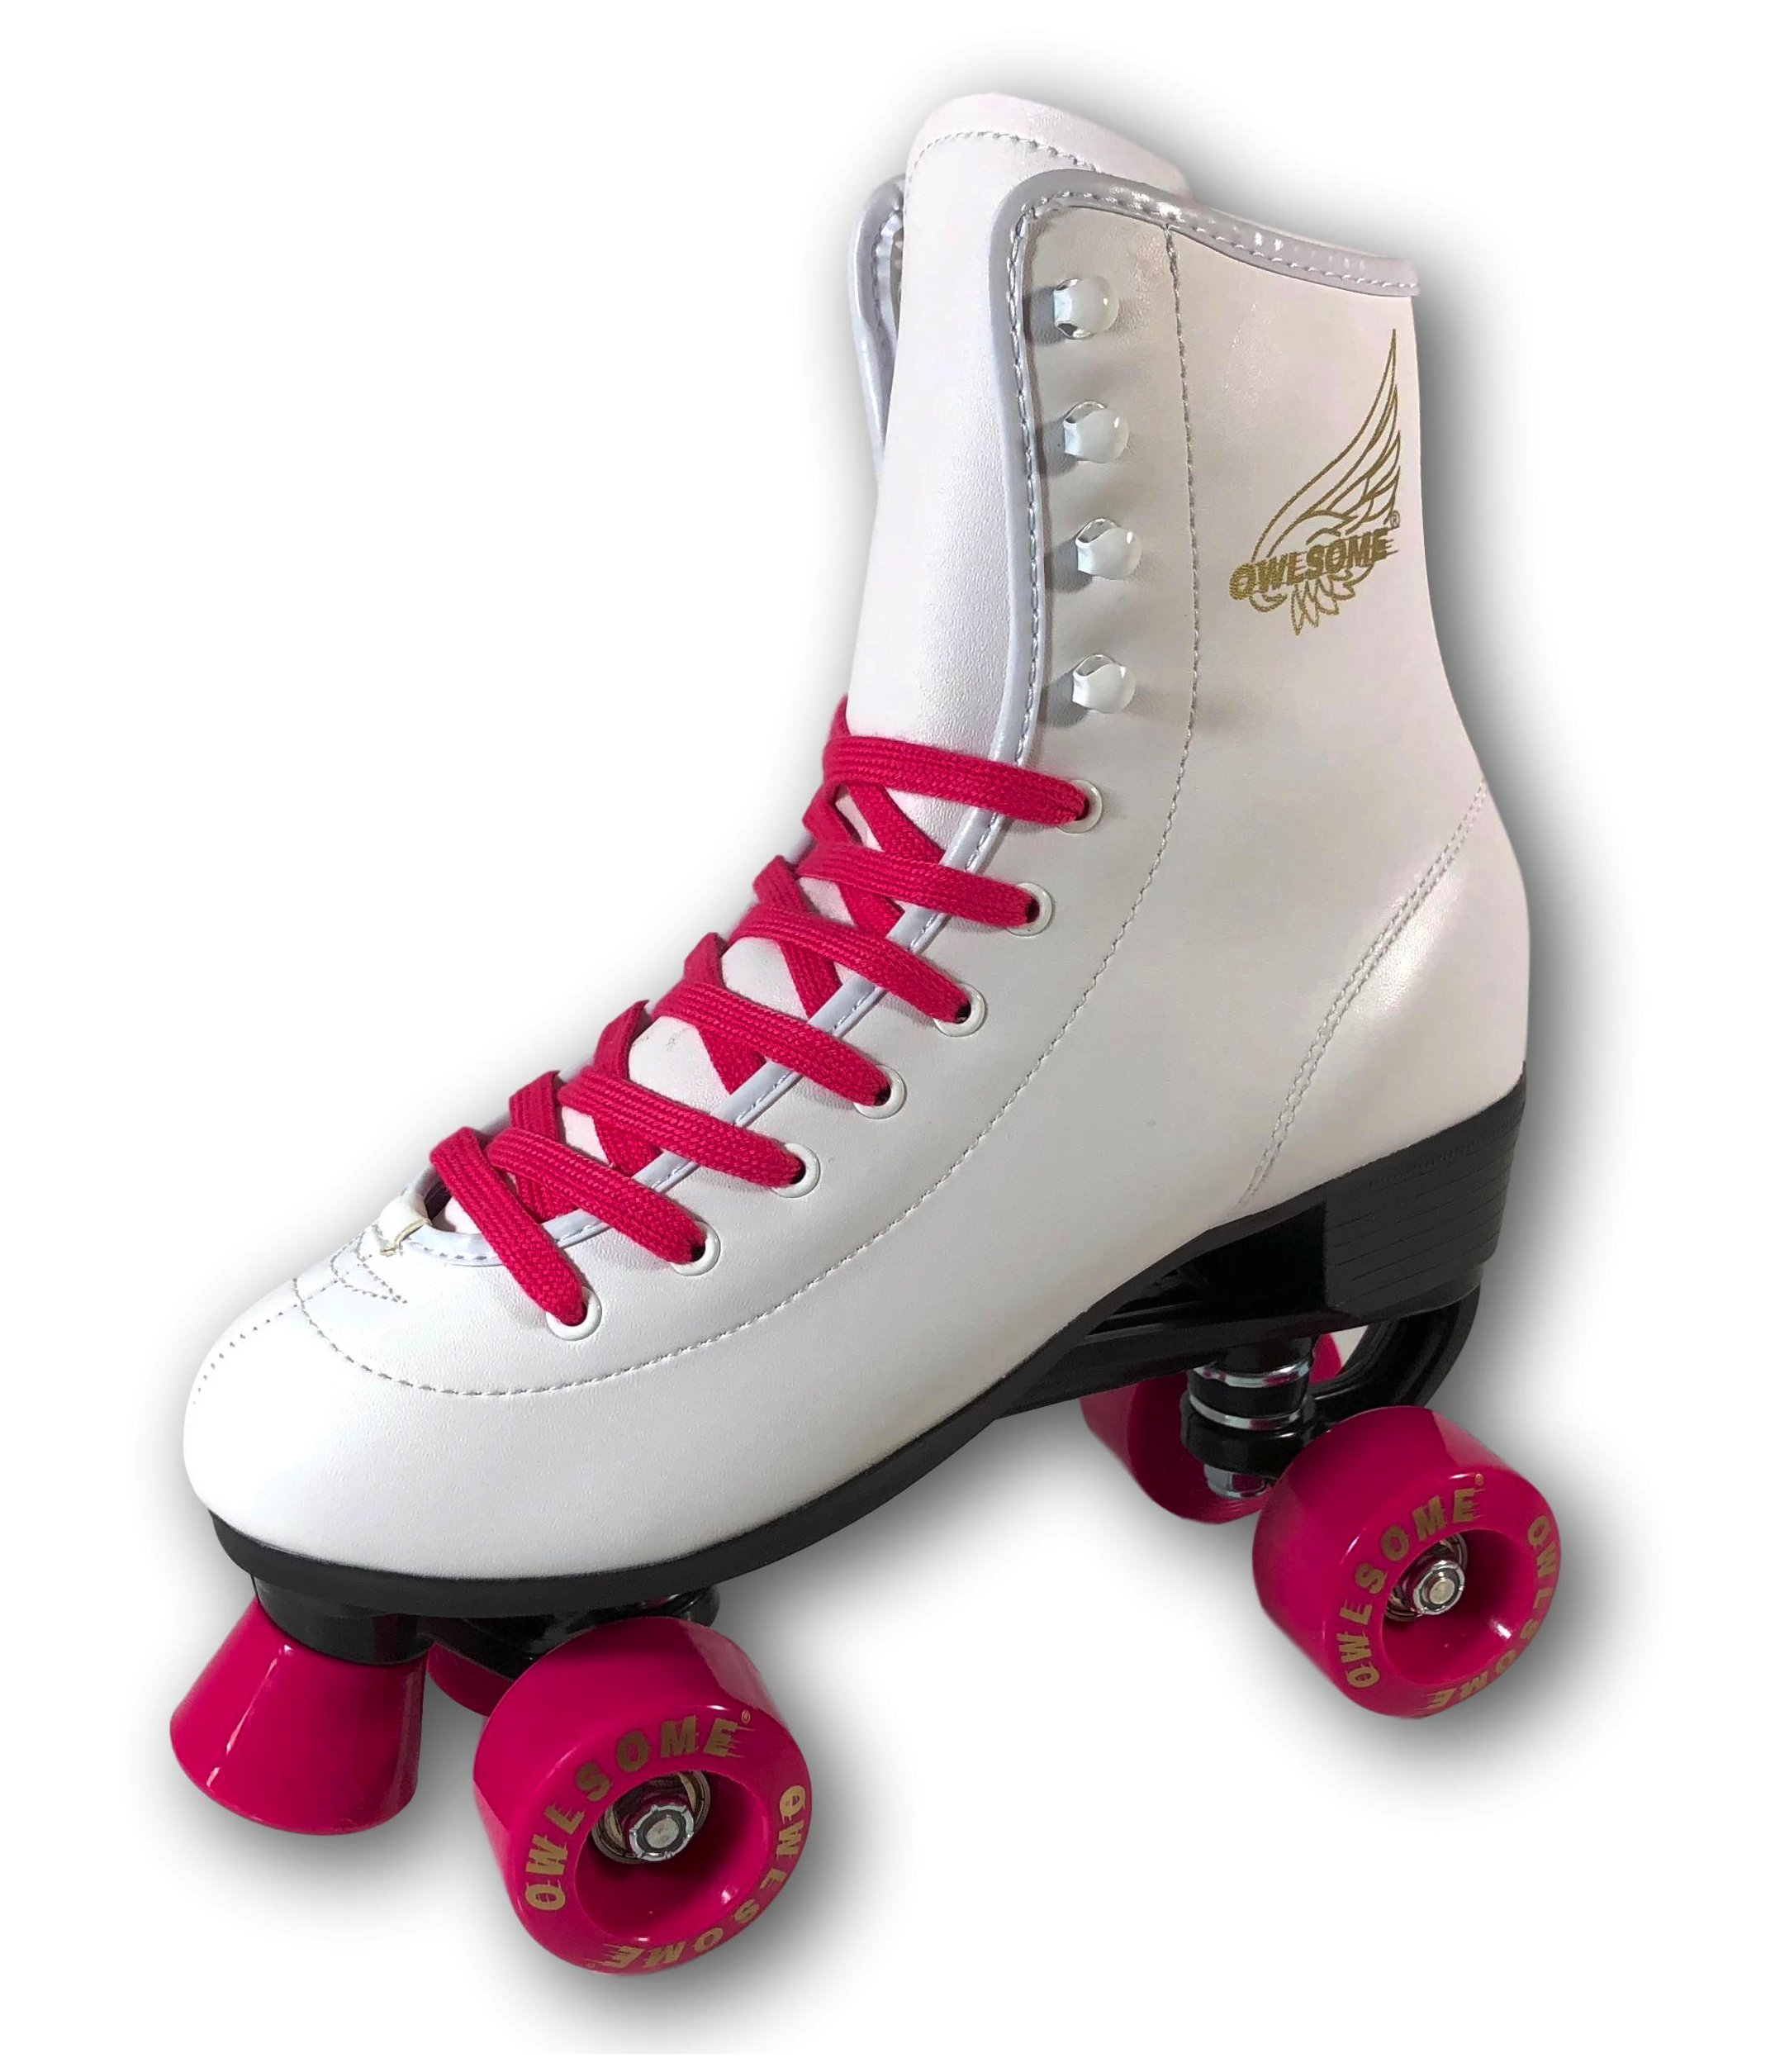 Owlsome Classic High Top Boot Style Soft Faux Leather Roller Skate For Adult & Youth (White/Pink, 1 (8.12''/20.6cm))